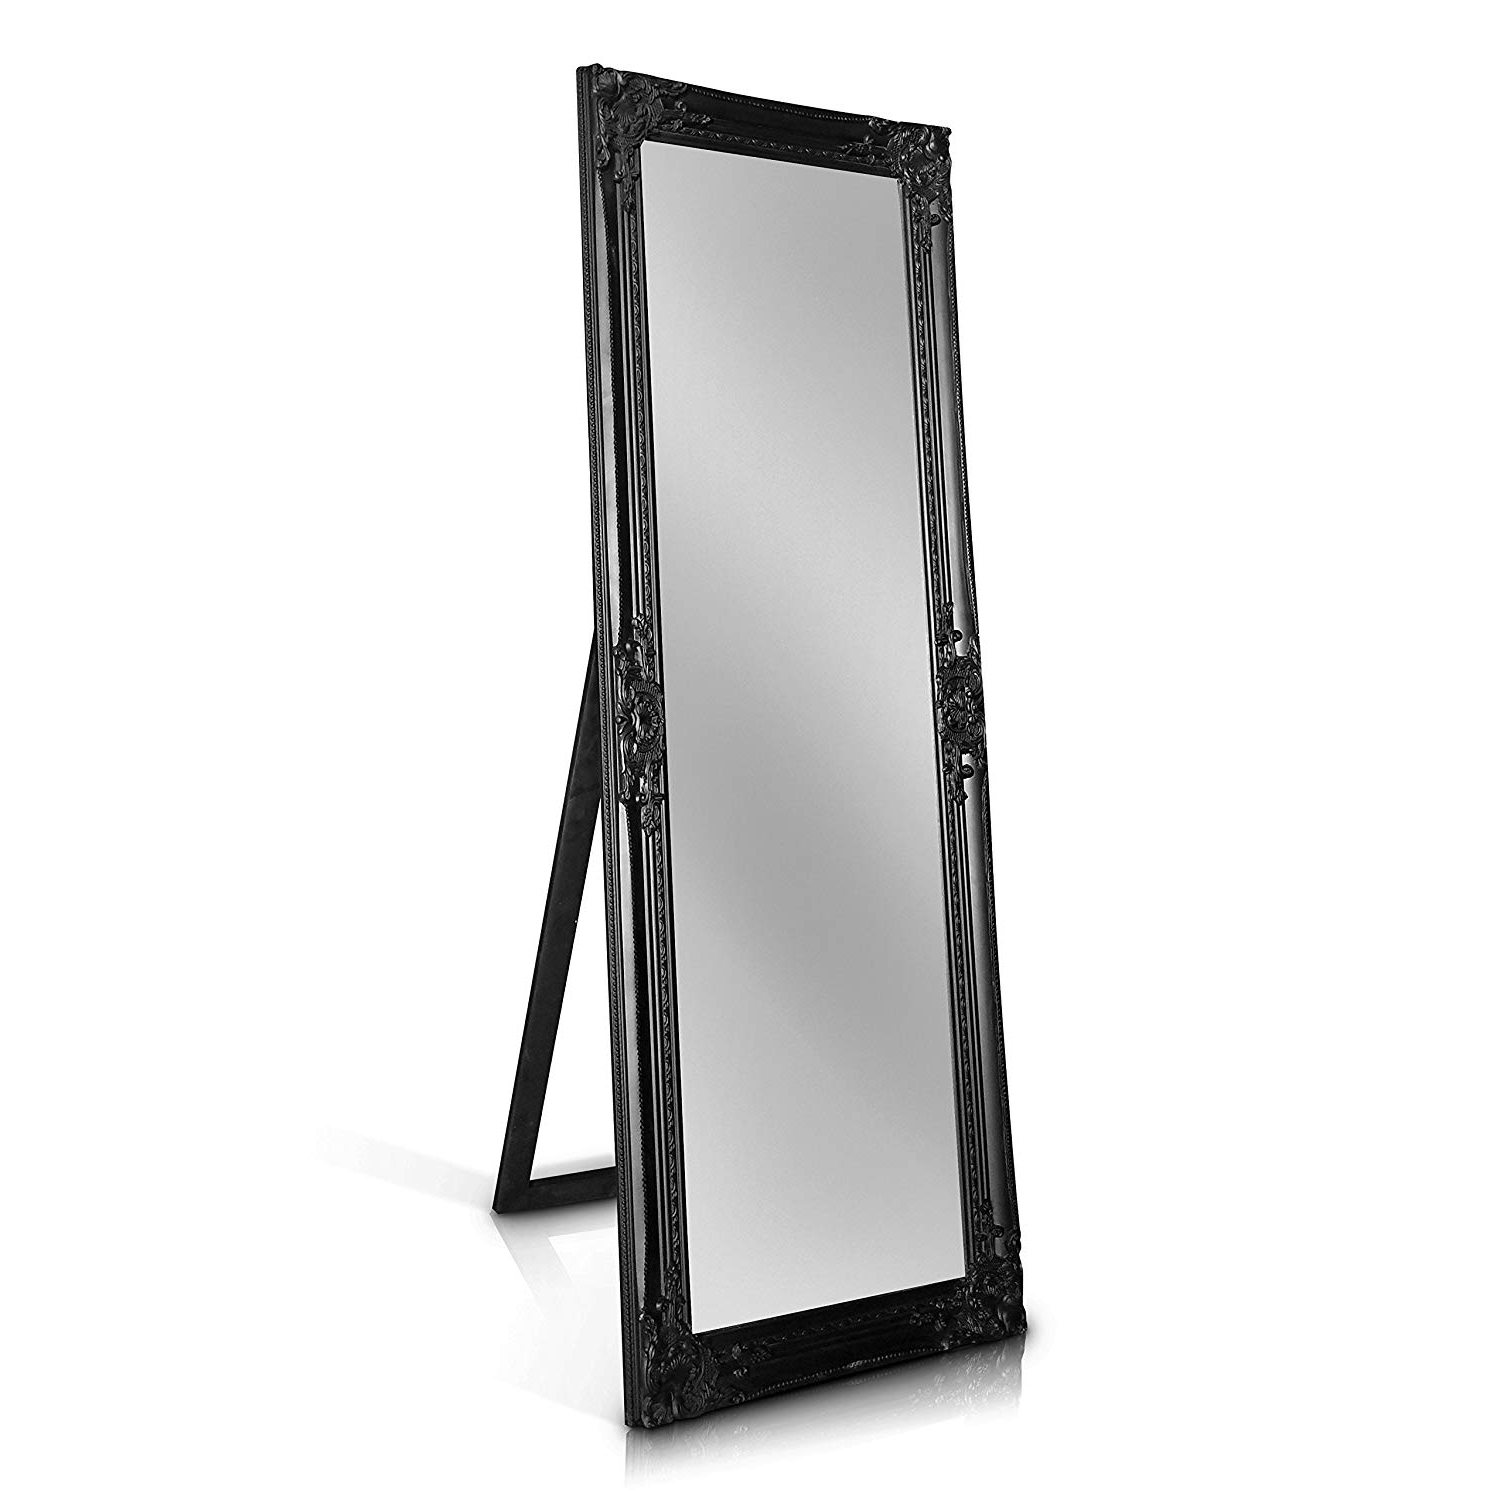 Widely Used Stand Up Wall Mirrors Intended For Rocococasa Chic – Shabby Chic Wall Mirror – 130X45 Cm  Solid Wood –  Large French Vintage Style Full Length Standing Mirror – Antique Black (View 19 of 20)